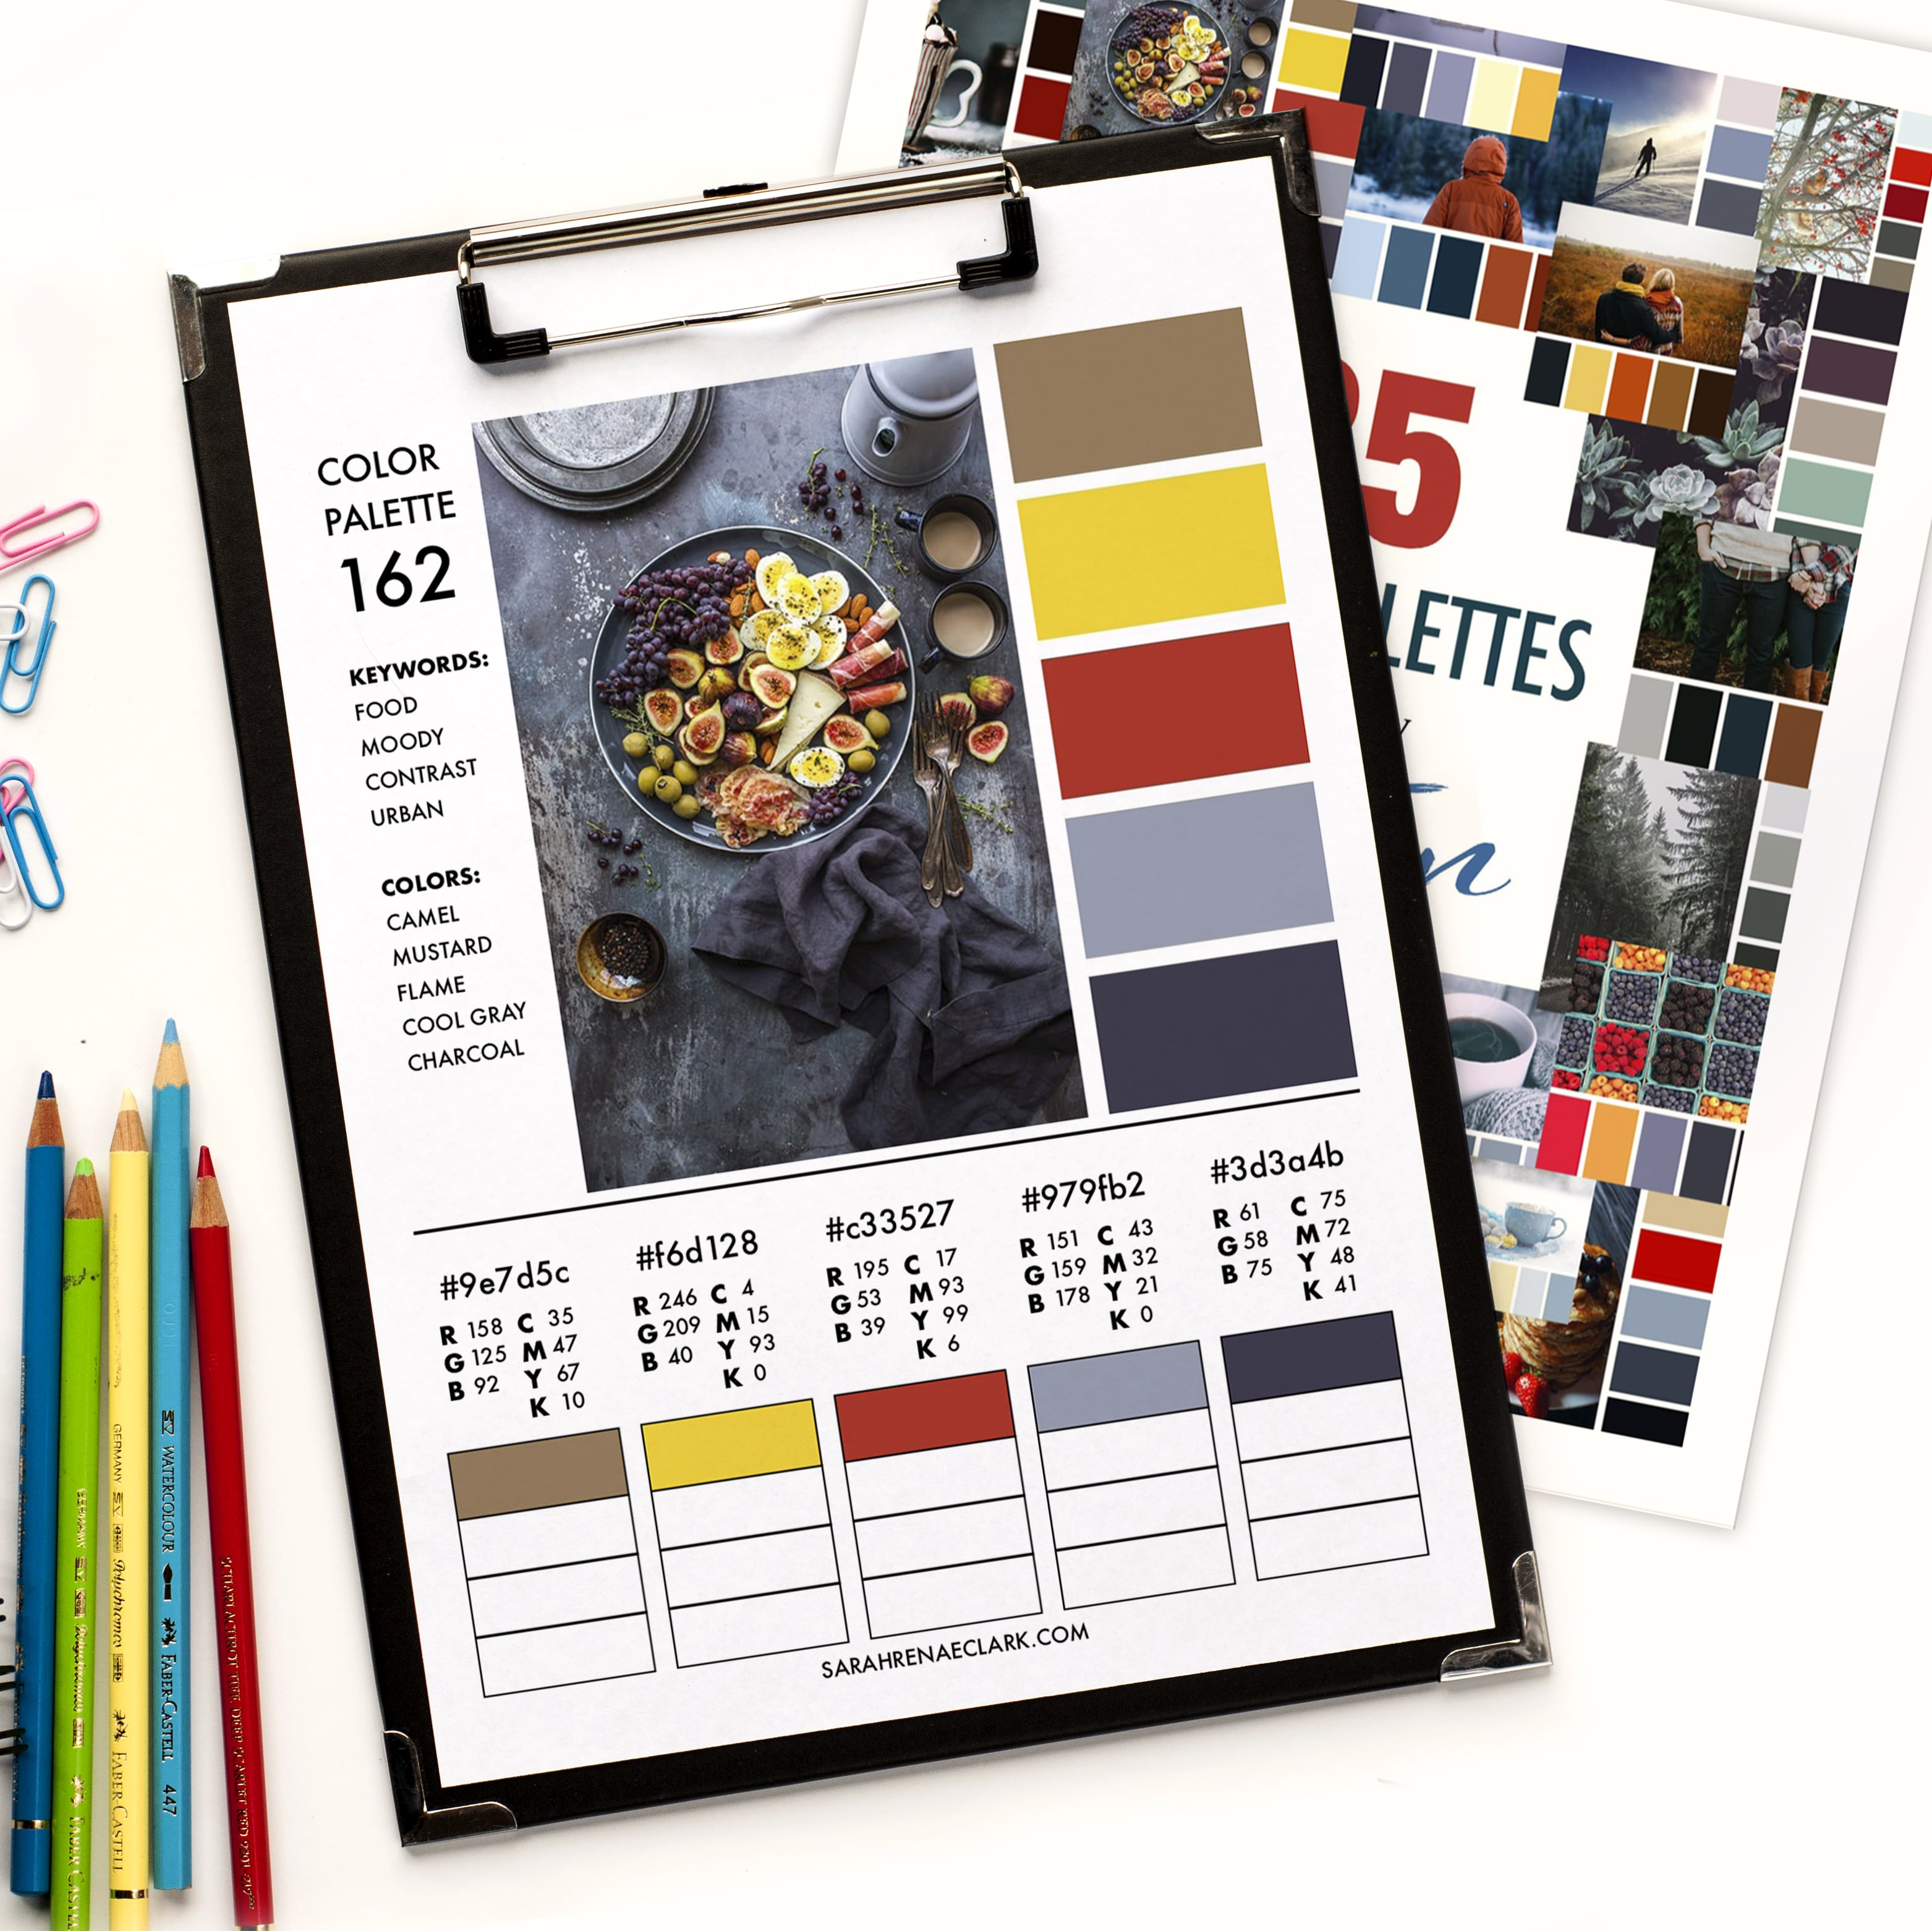 Get the PDF version of all 25 color palettes, including RGB, CMYK and HEX codes for each color. Click to buy now!